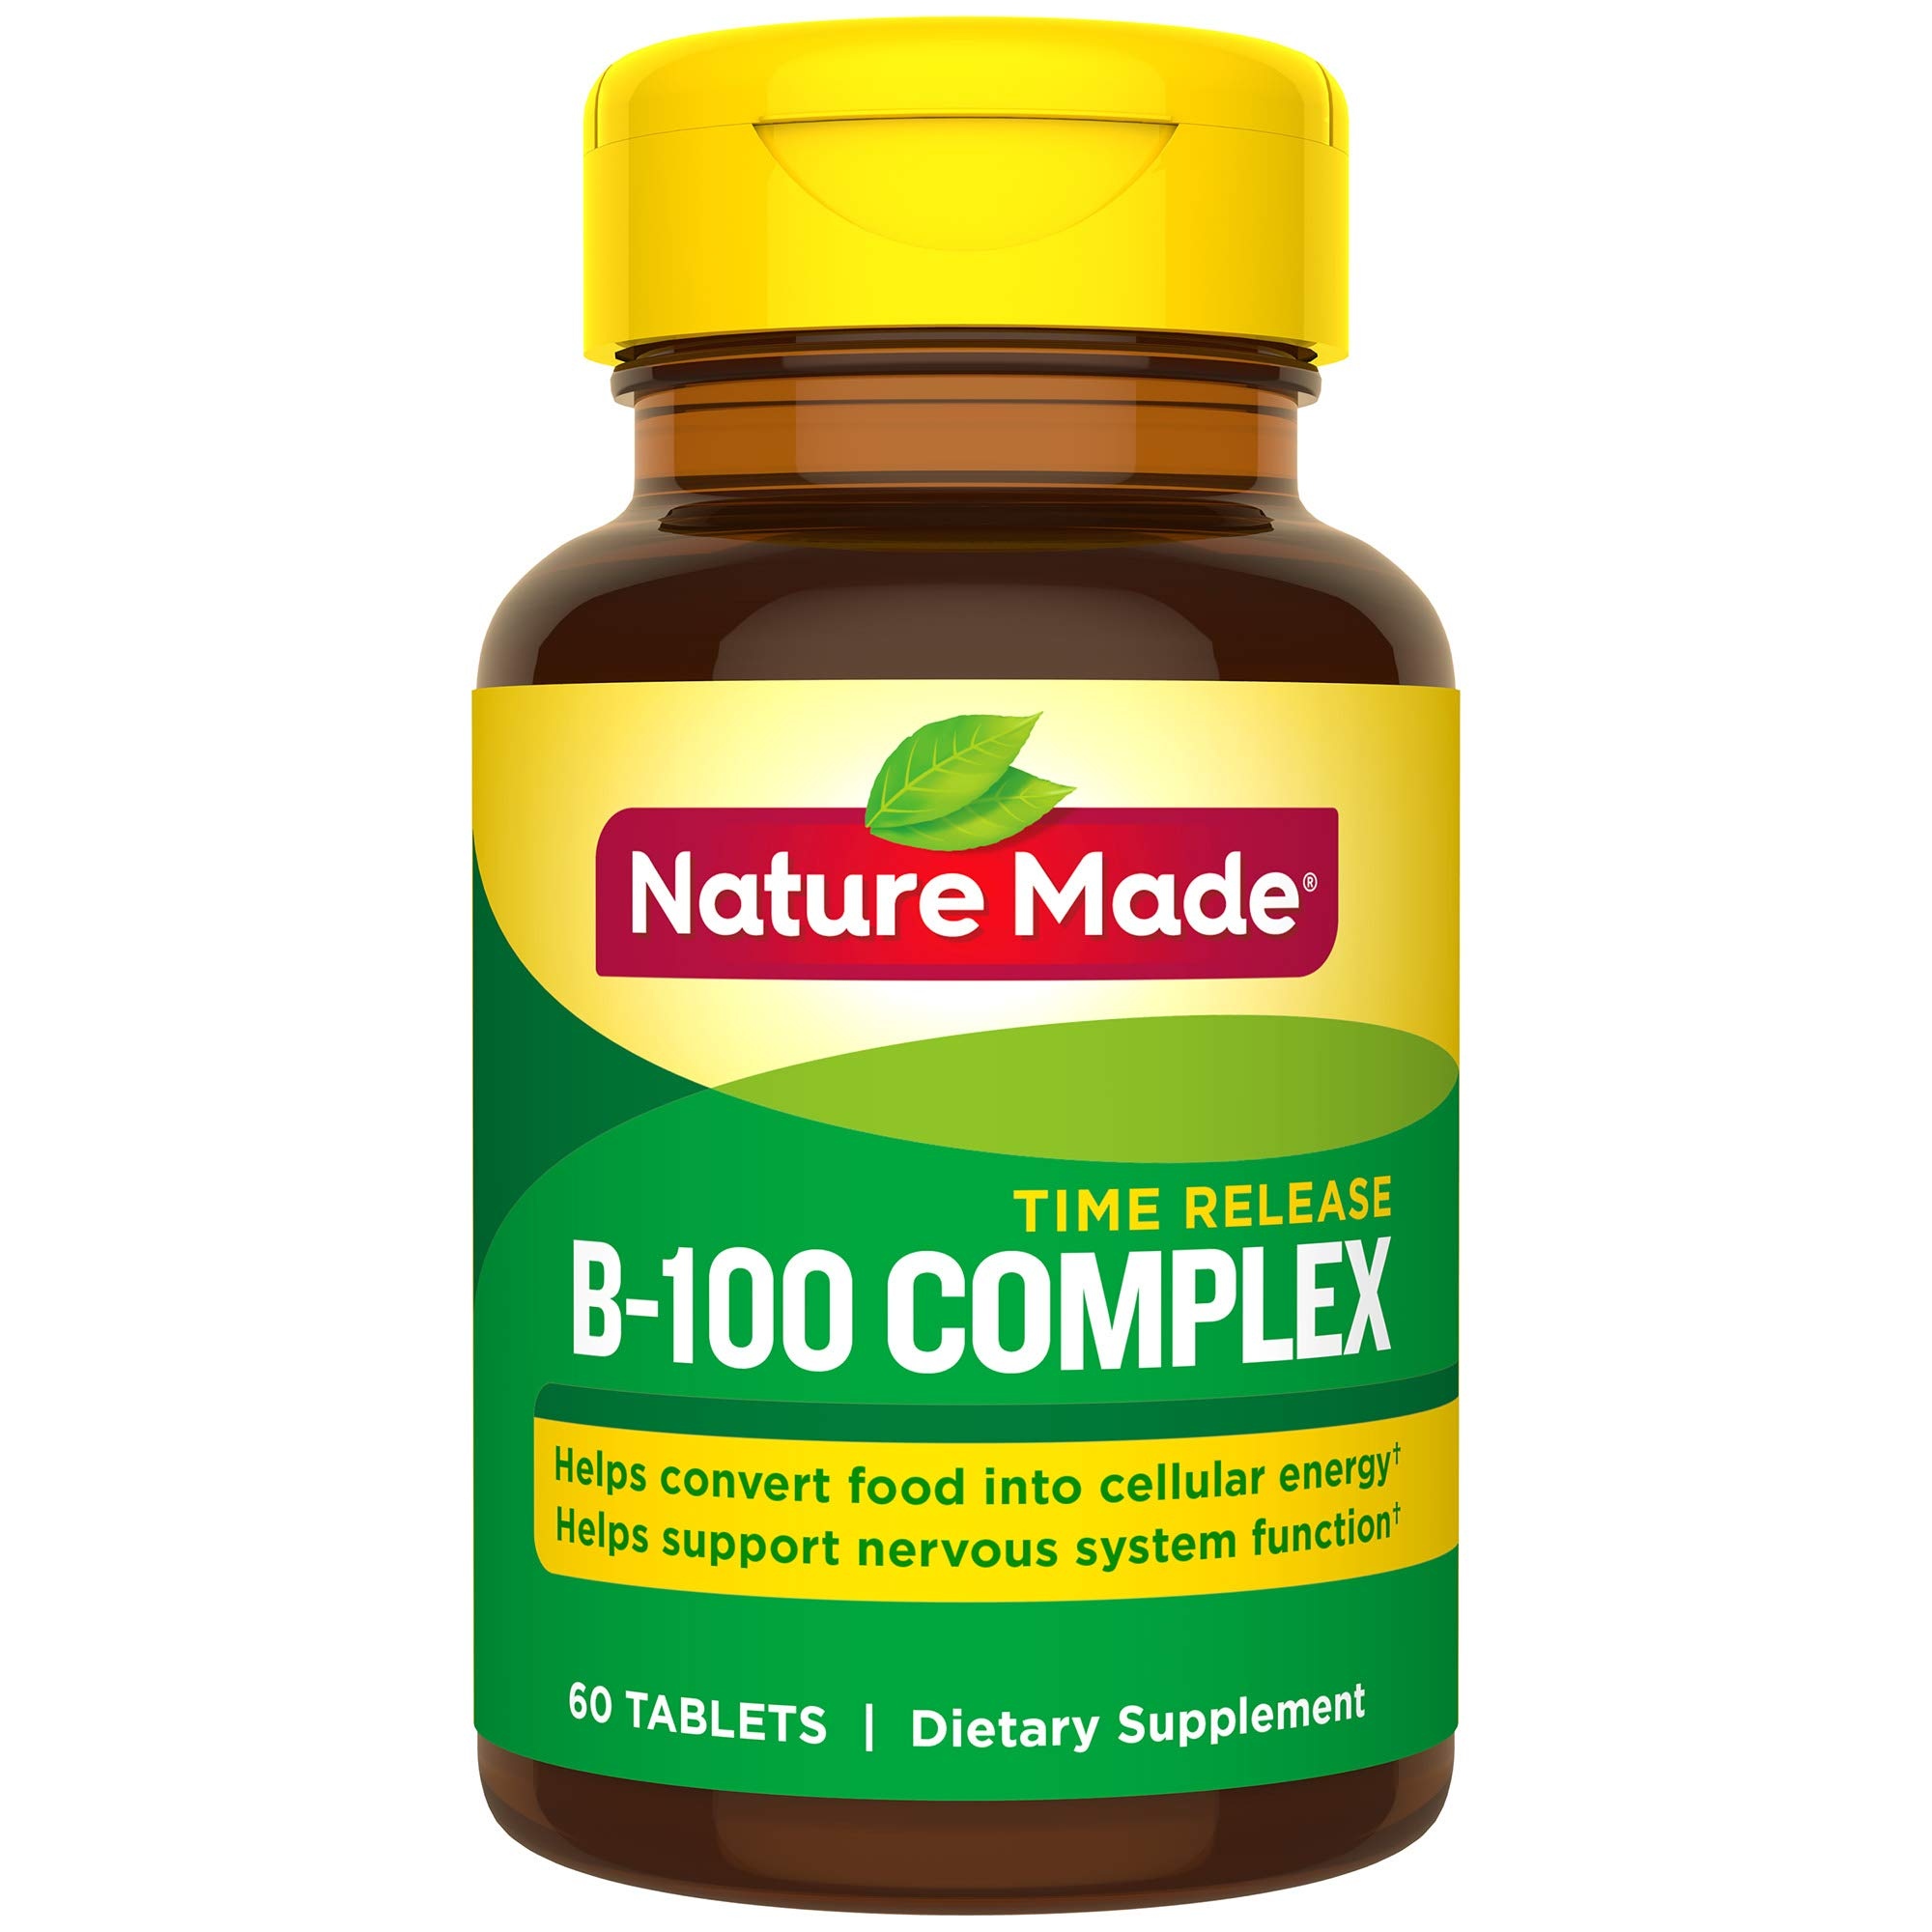 Nature Made Balanced B-100 Timed Release (Thiamin, Riboflavin, Niacin, B6, B12, Biotin, Pantothenic Acid & Folic Acid) Tablets 3 Pack by Nature Made